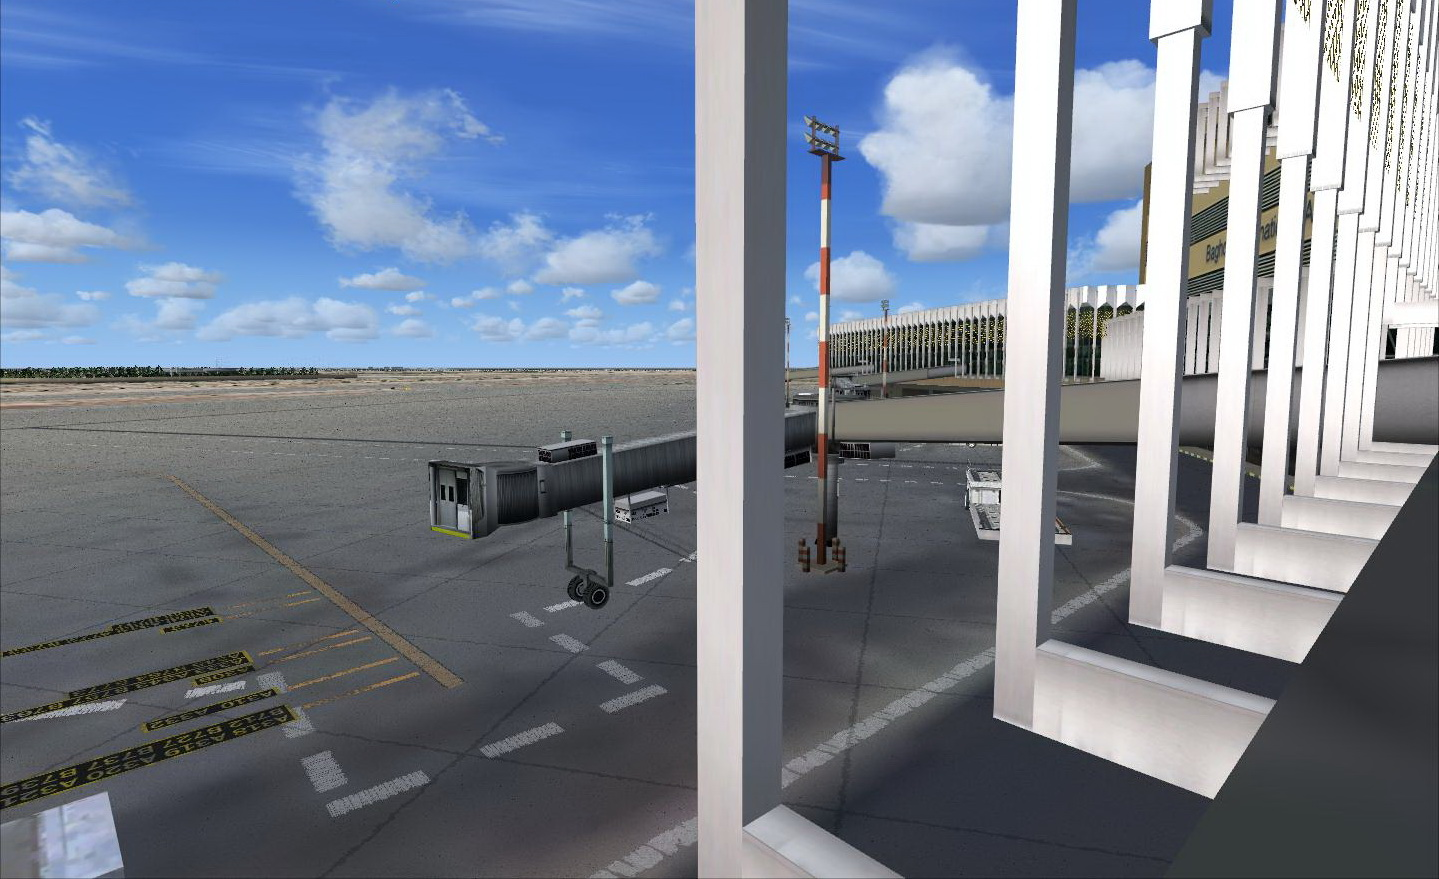 ARMI PROJECT - BAGHDAD INTERNATIONAL AIRPORT ORBI FSX